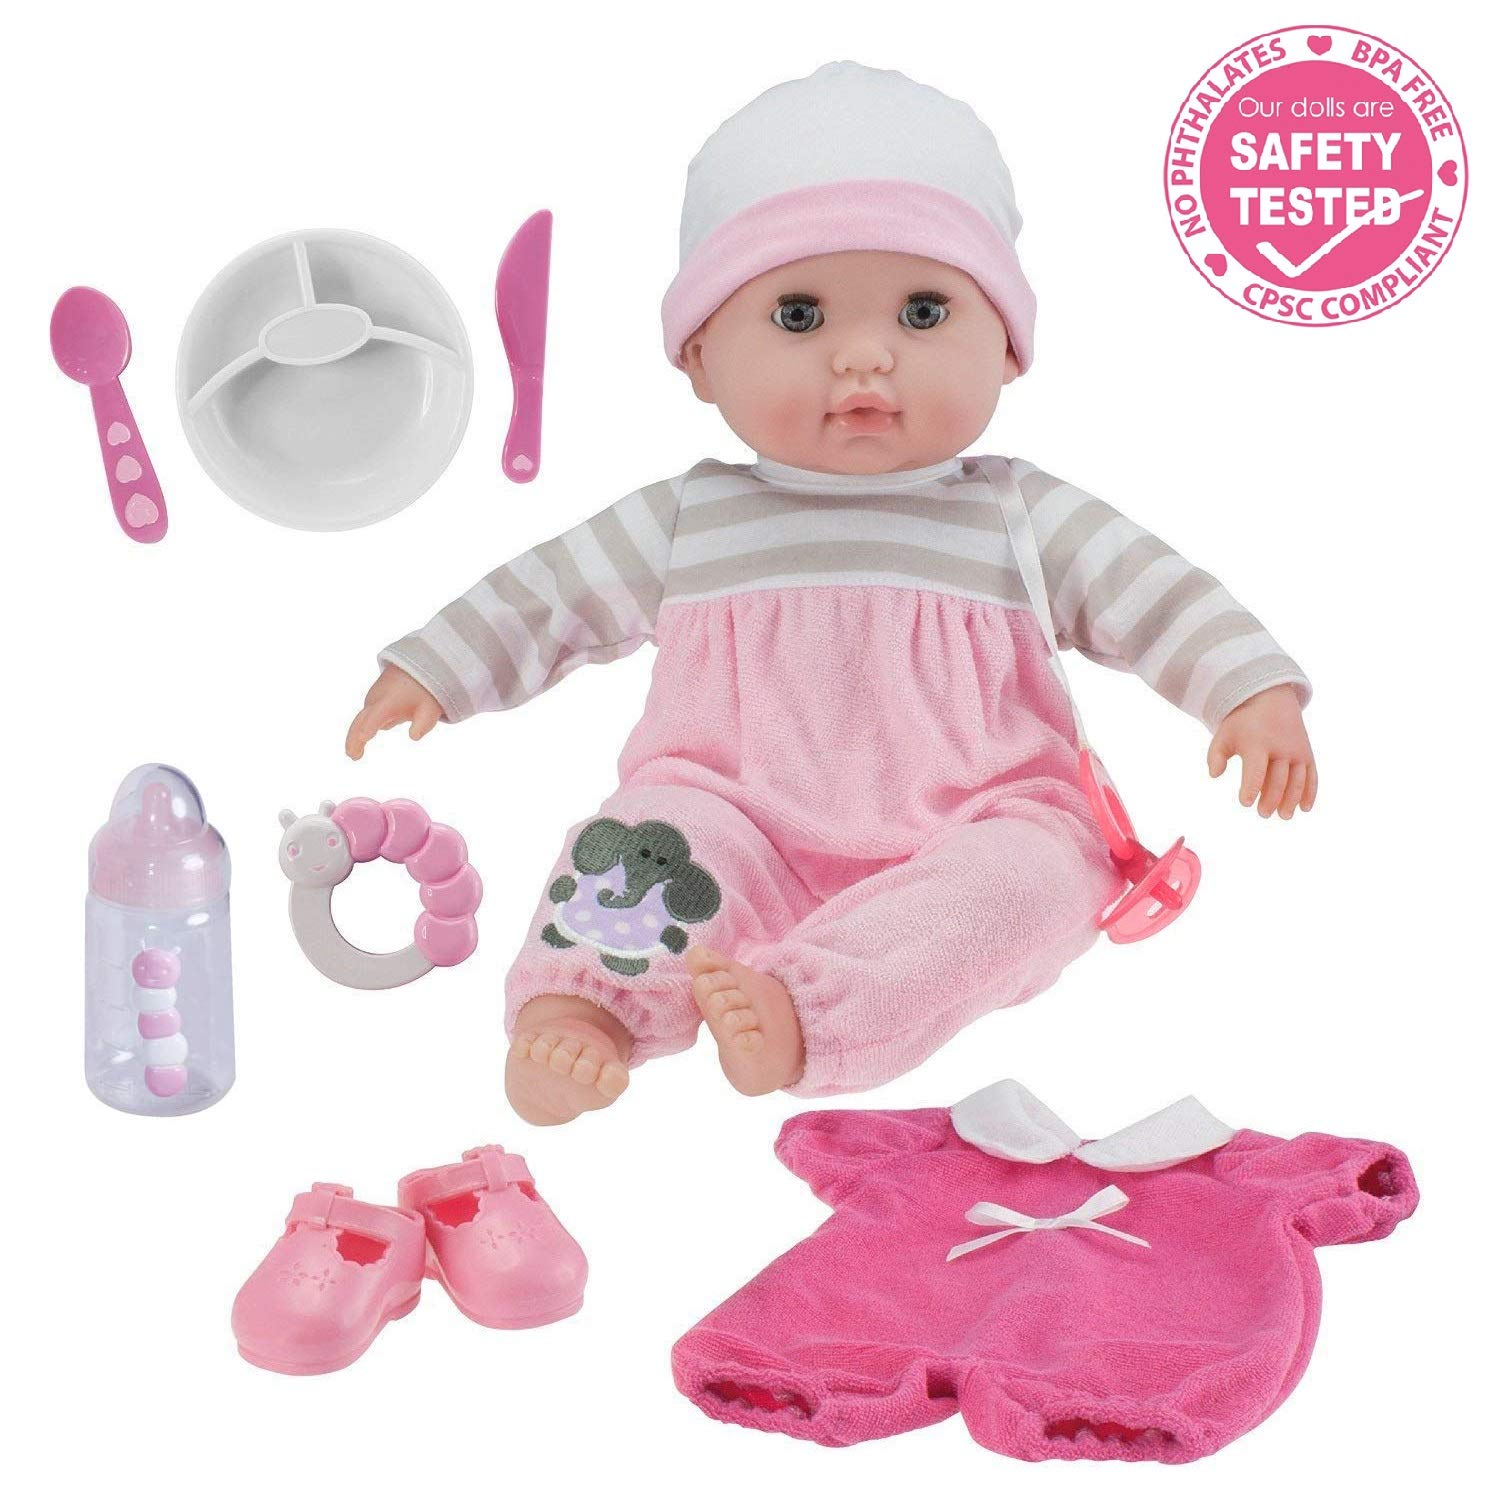 Berenguer Boutique 15'' Soft Body Baby Doll - Pink 10 Piece Gift Set with Open/Close Eyes- Perfect for Children 2+ by JC Toys